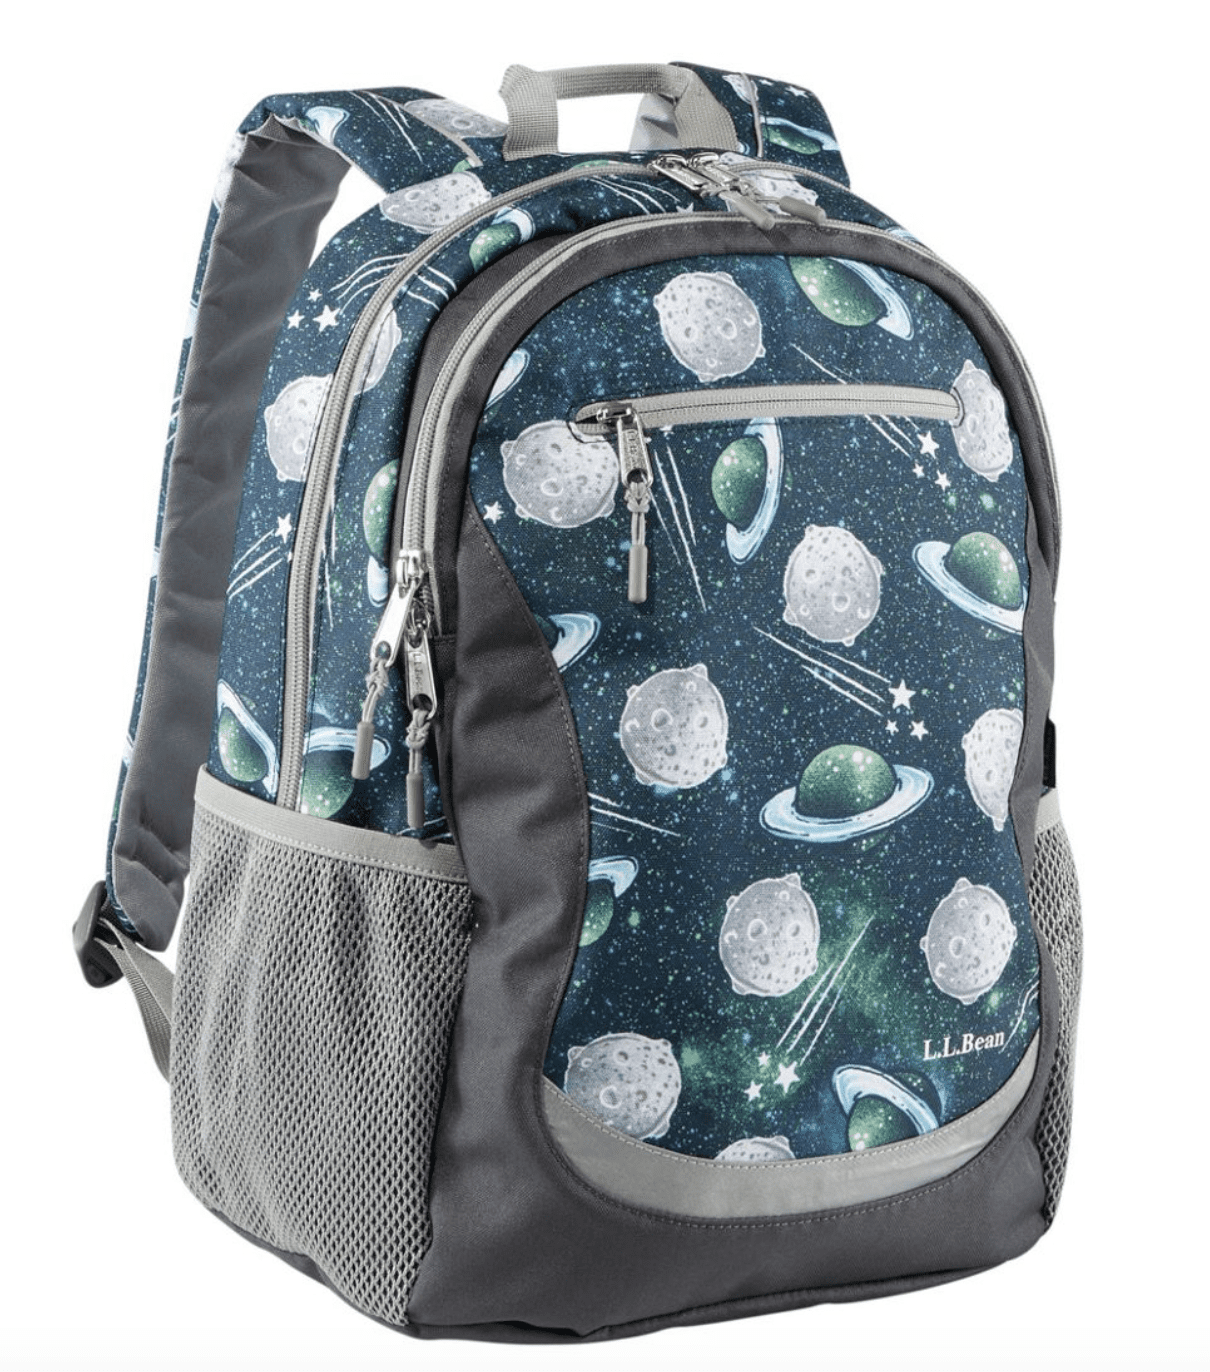 L.L.Bean: Select Backpack on sale!